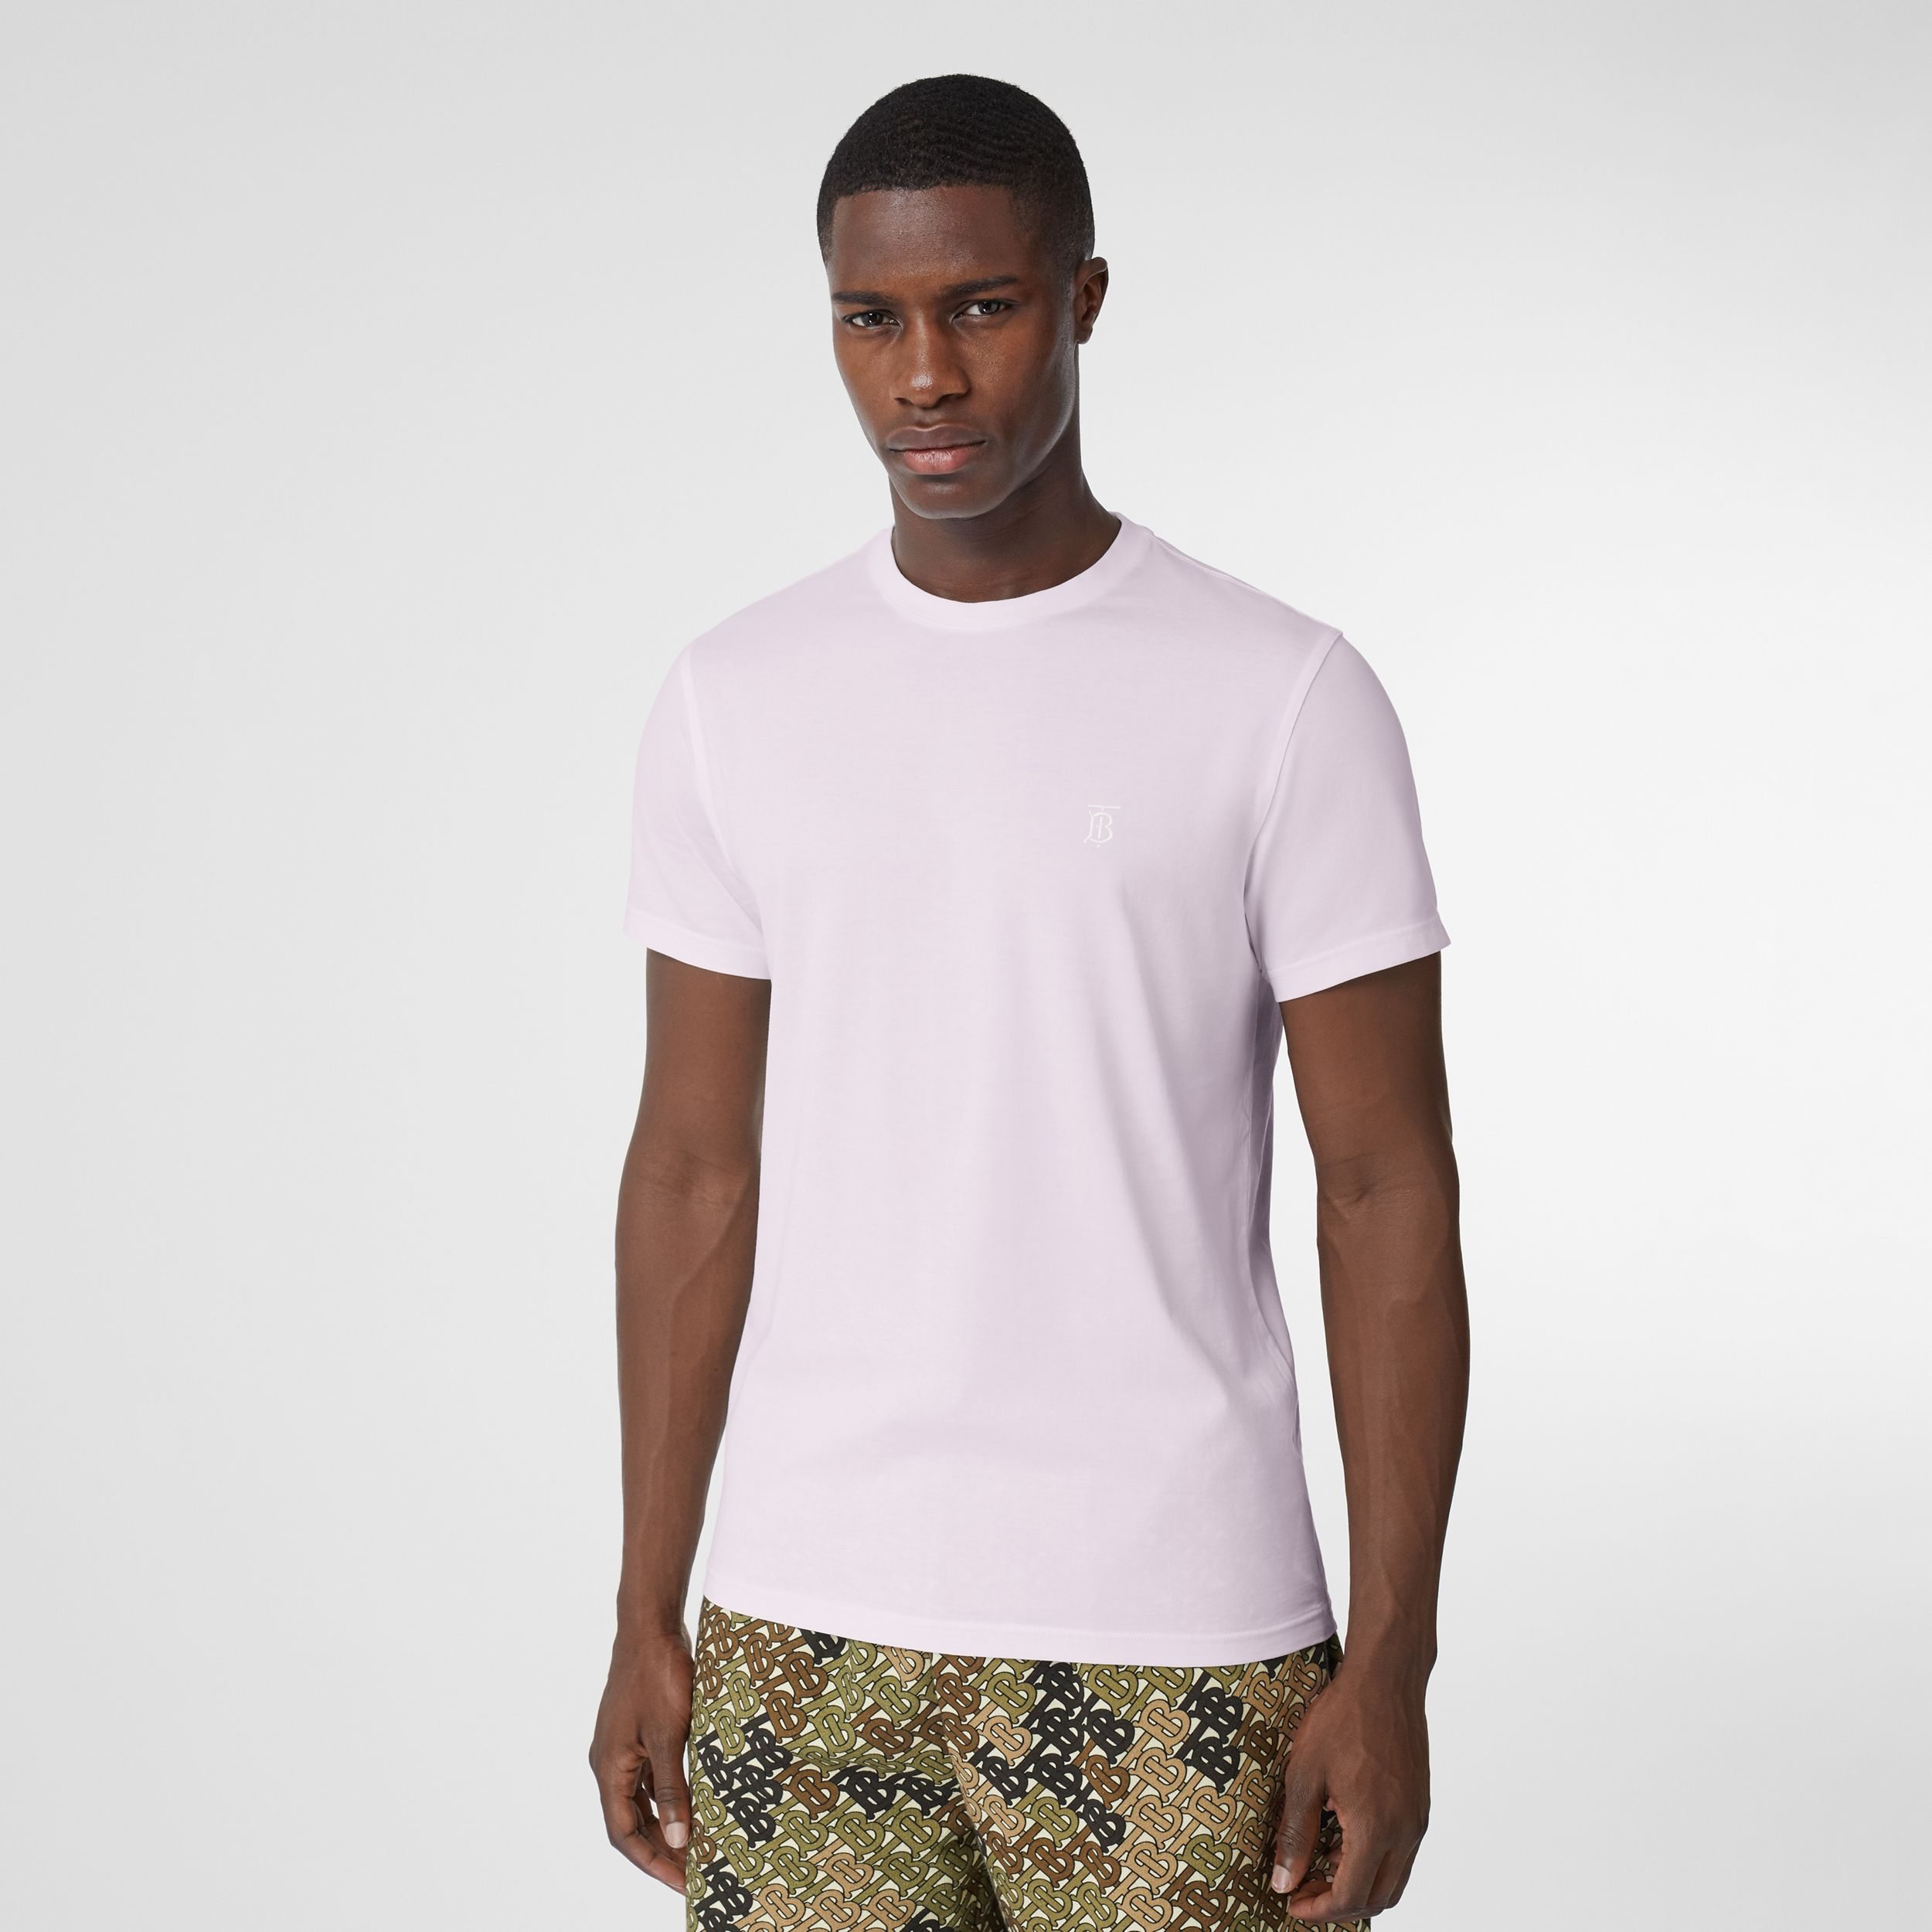 Monogram Motif Cotton T-shirt in Pale Thistle - Men | Burberry - 1